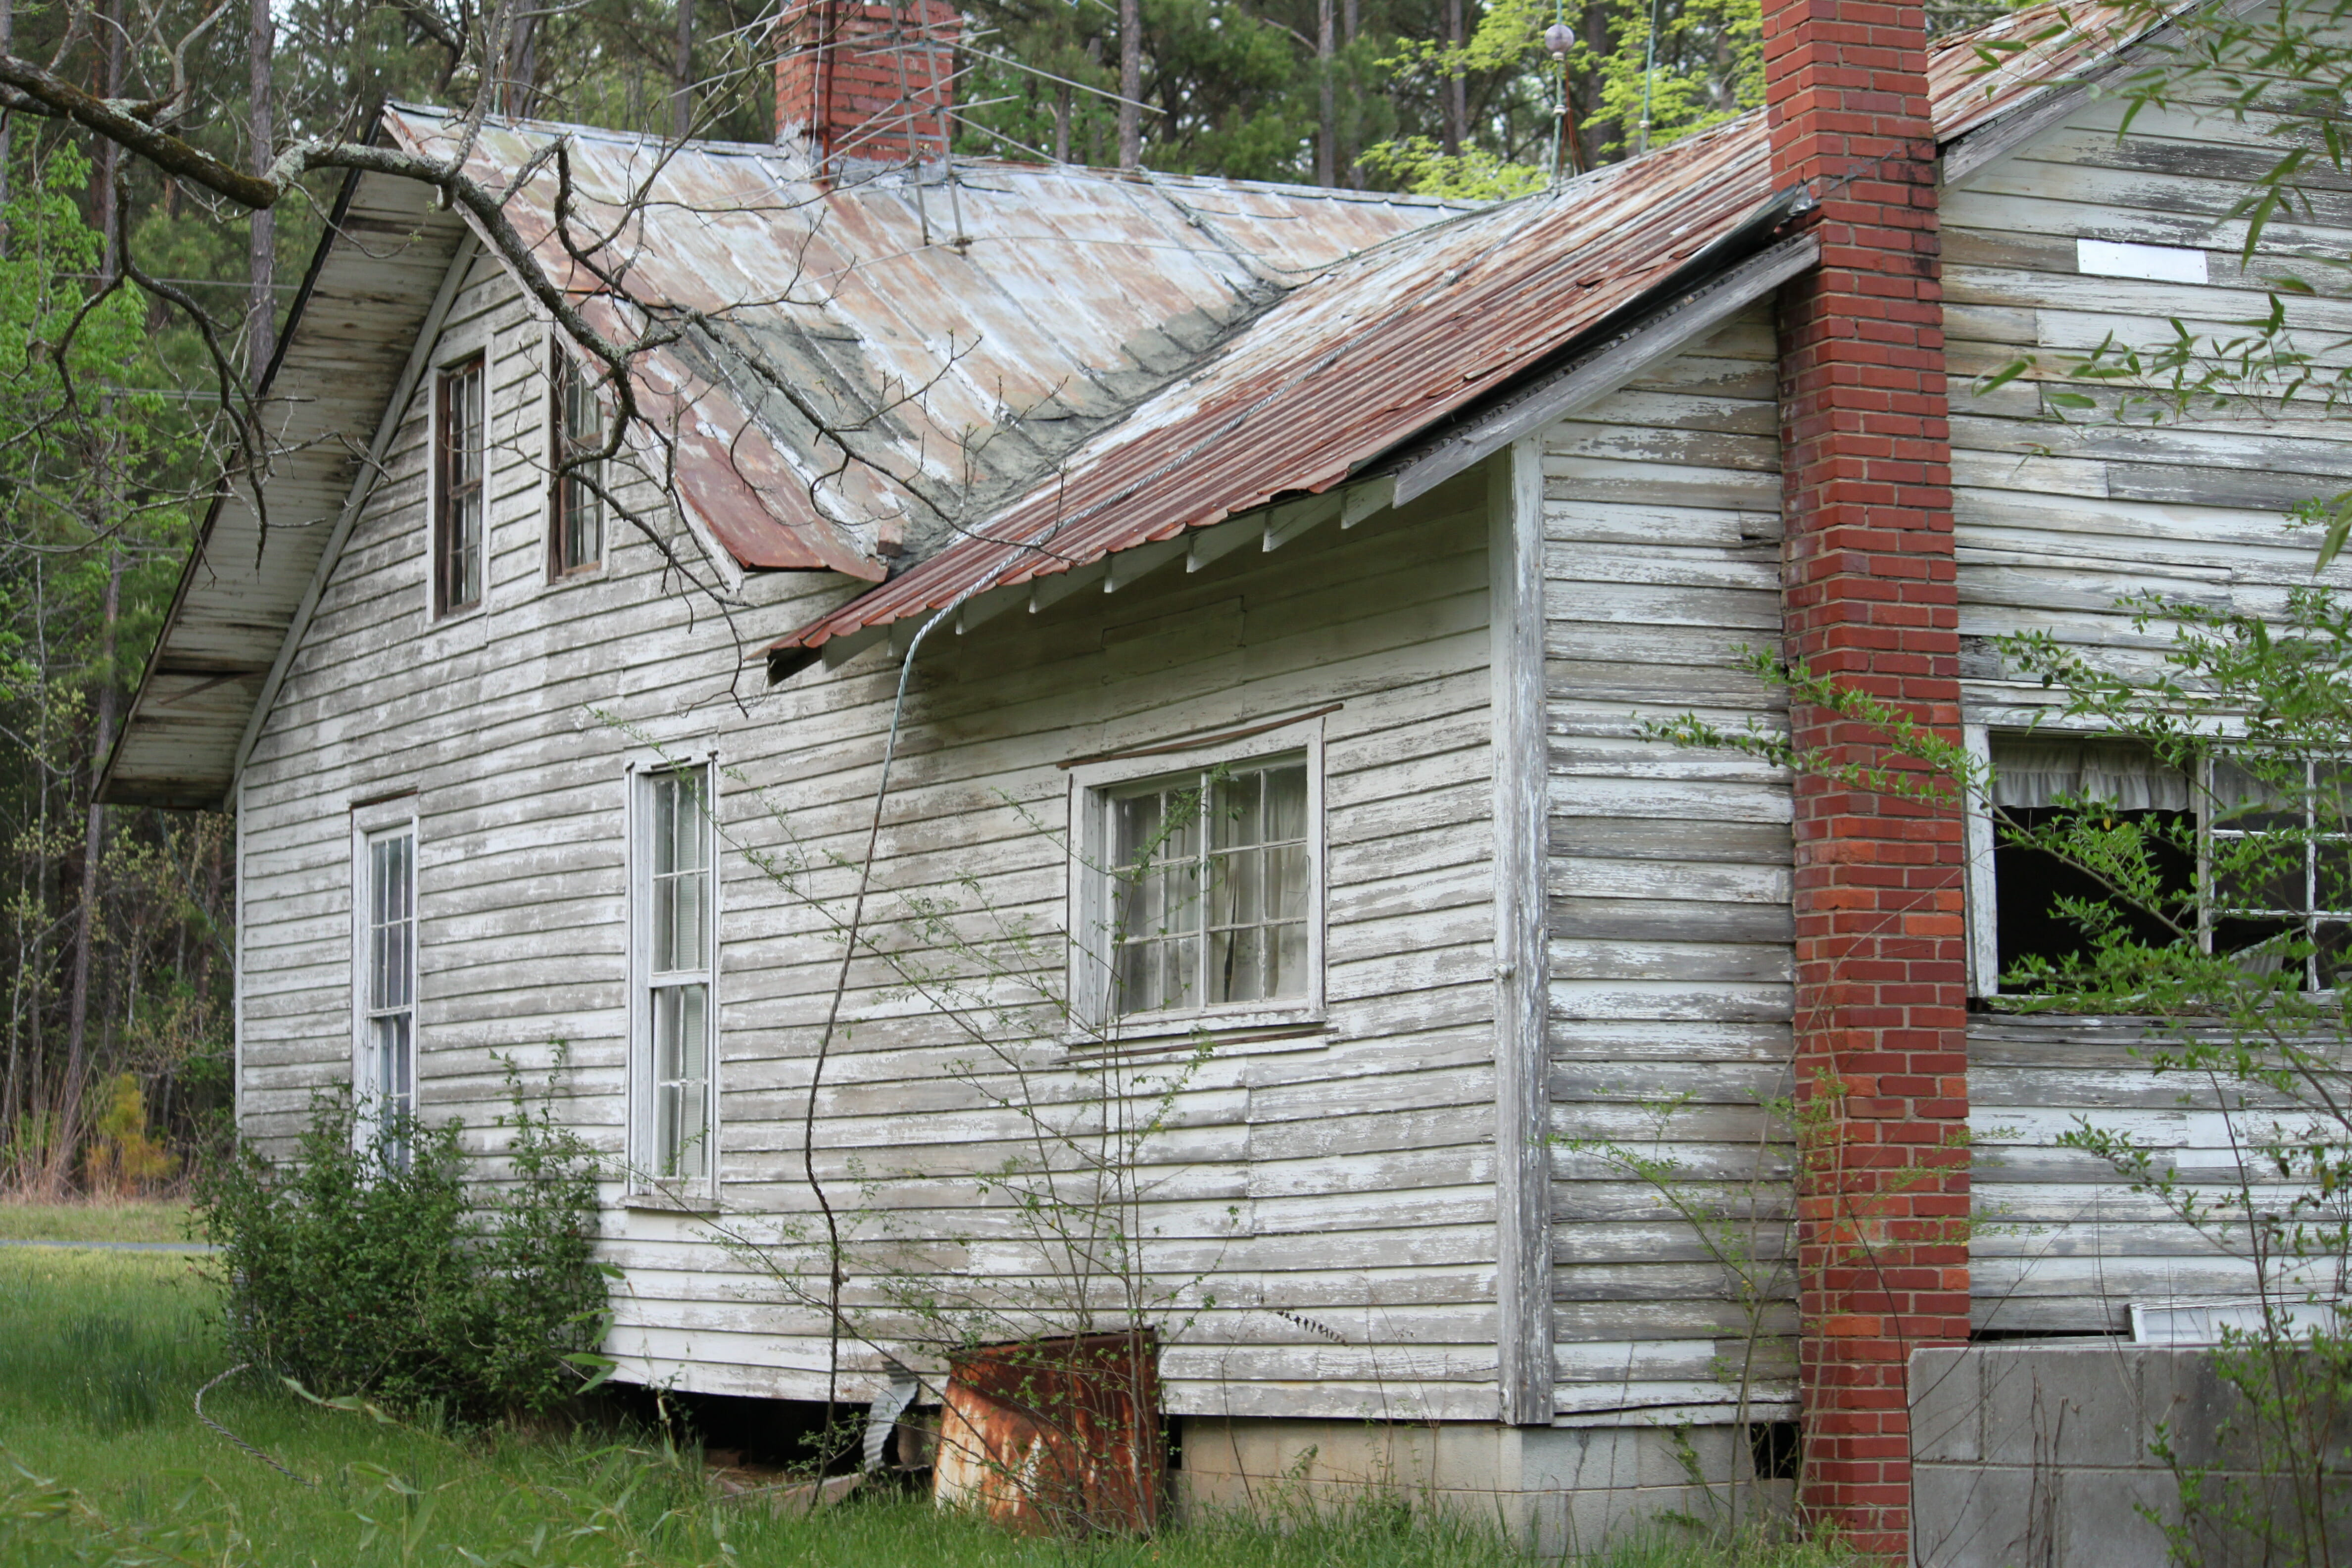 Old dilapidated house in bad shape